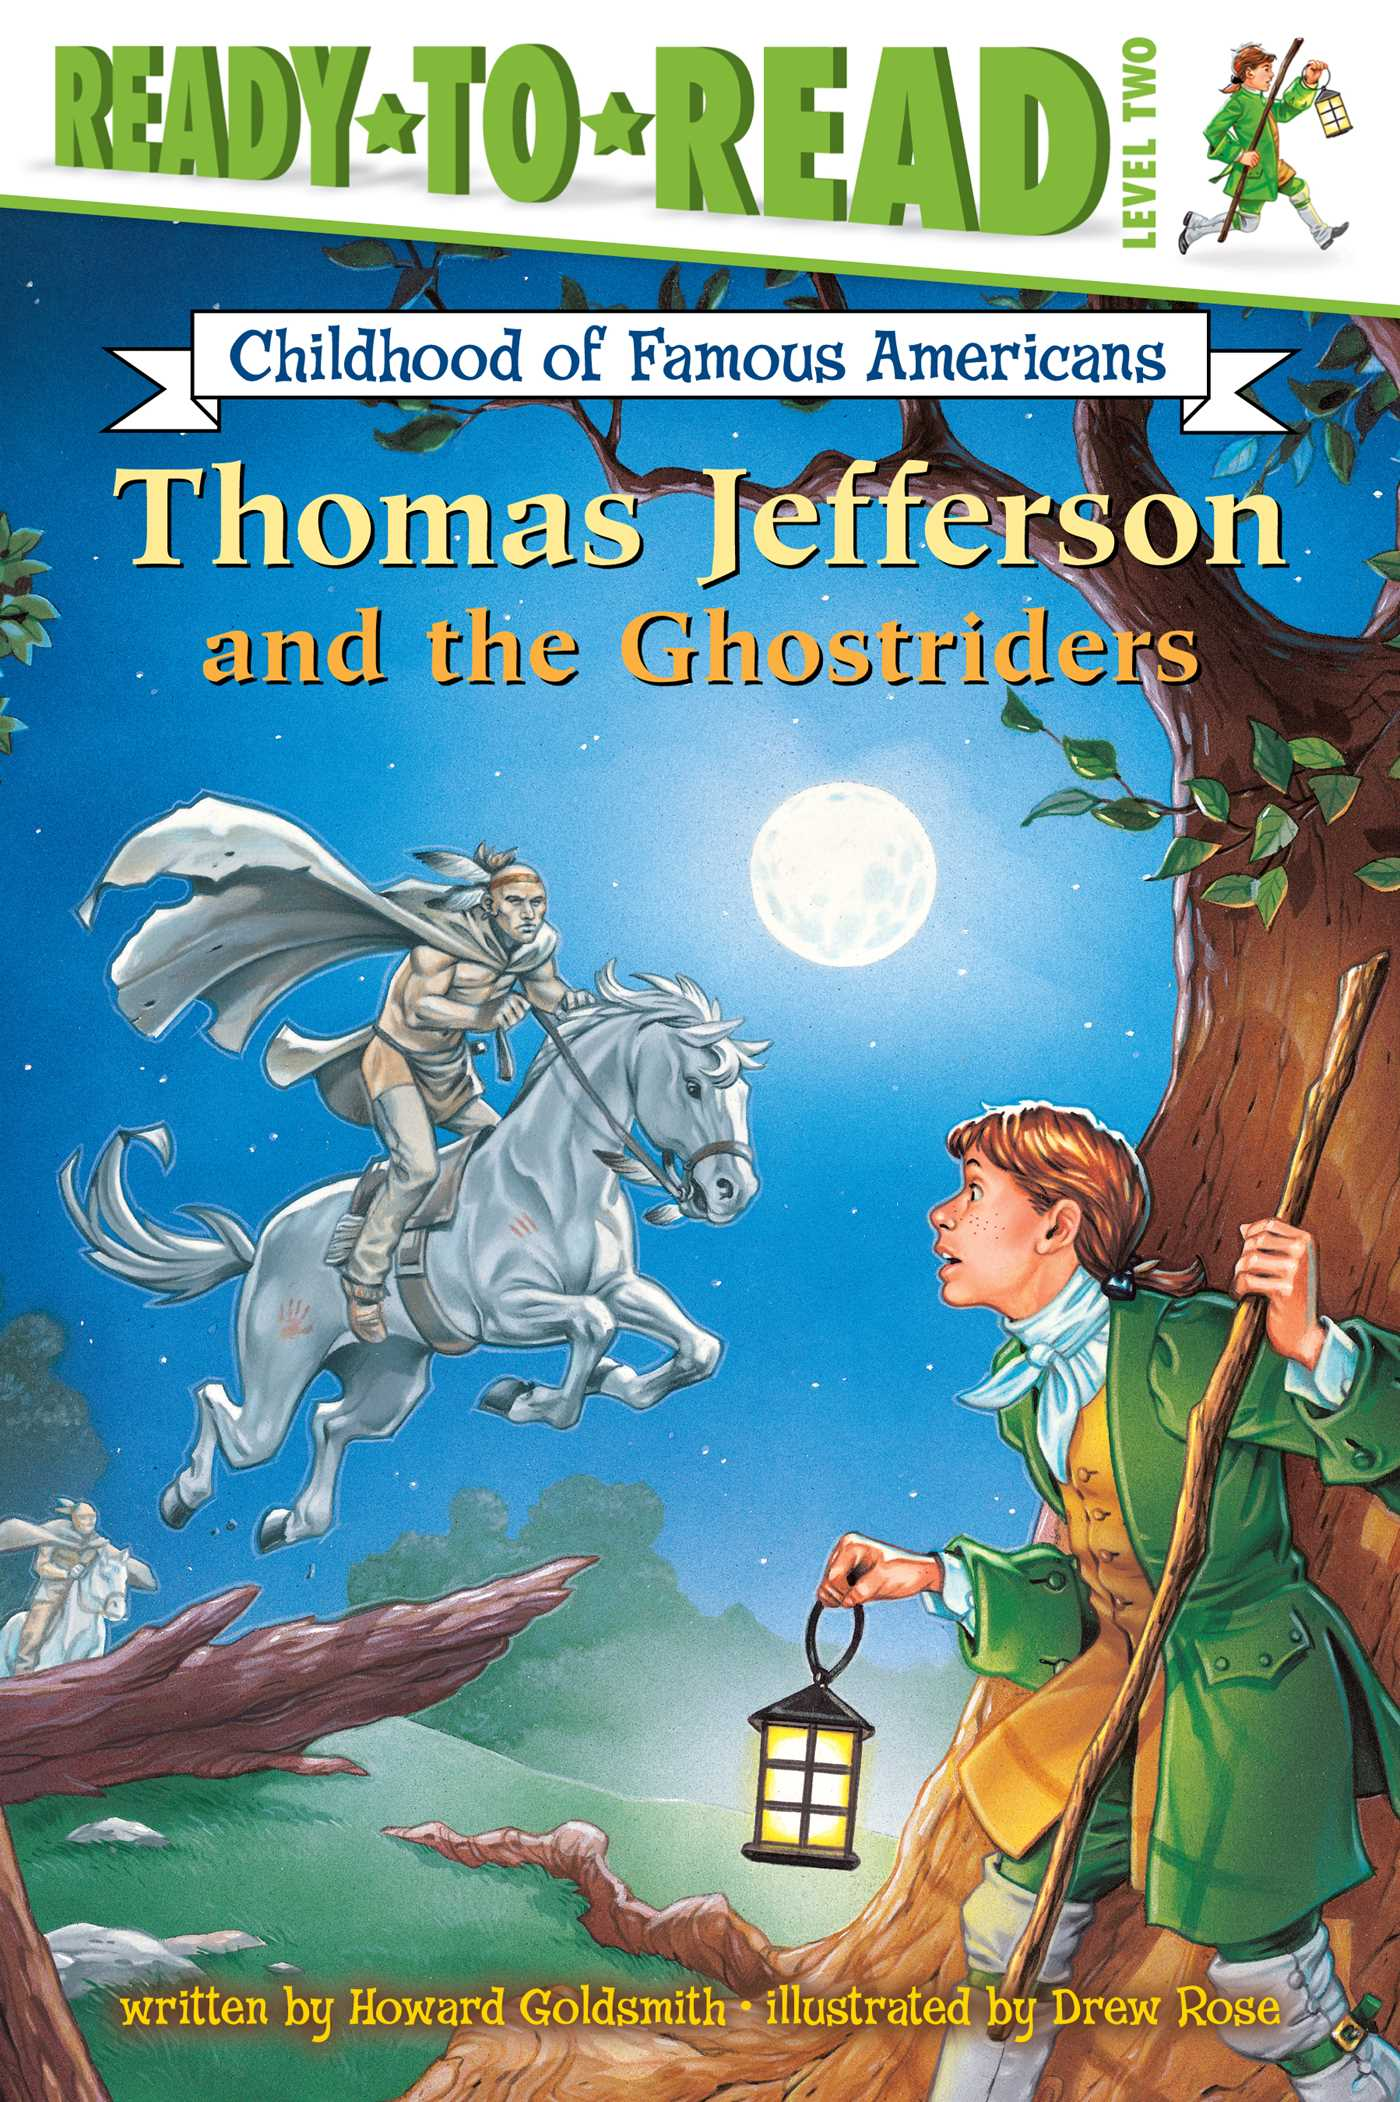 Thomas jefferson and the ghostriders 9781416926924 hr